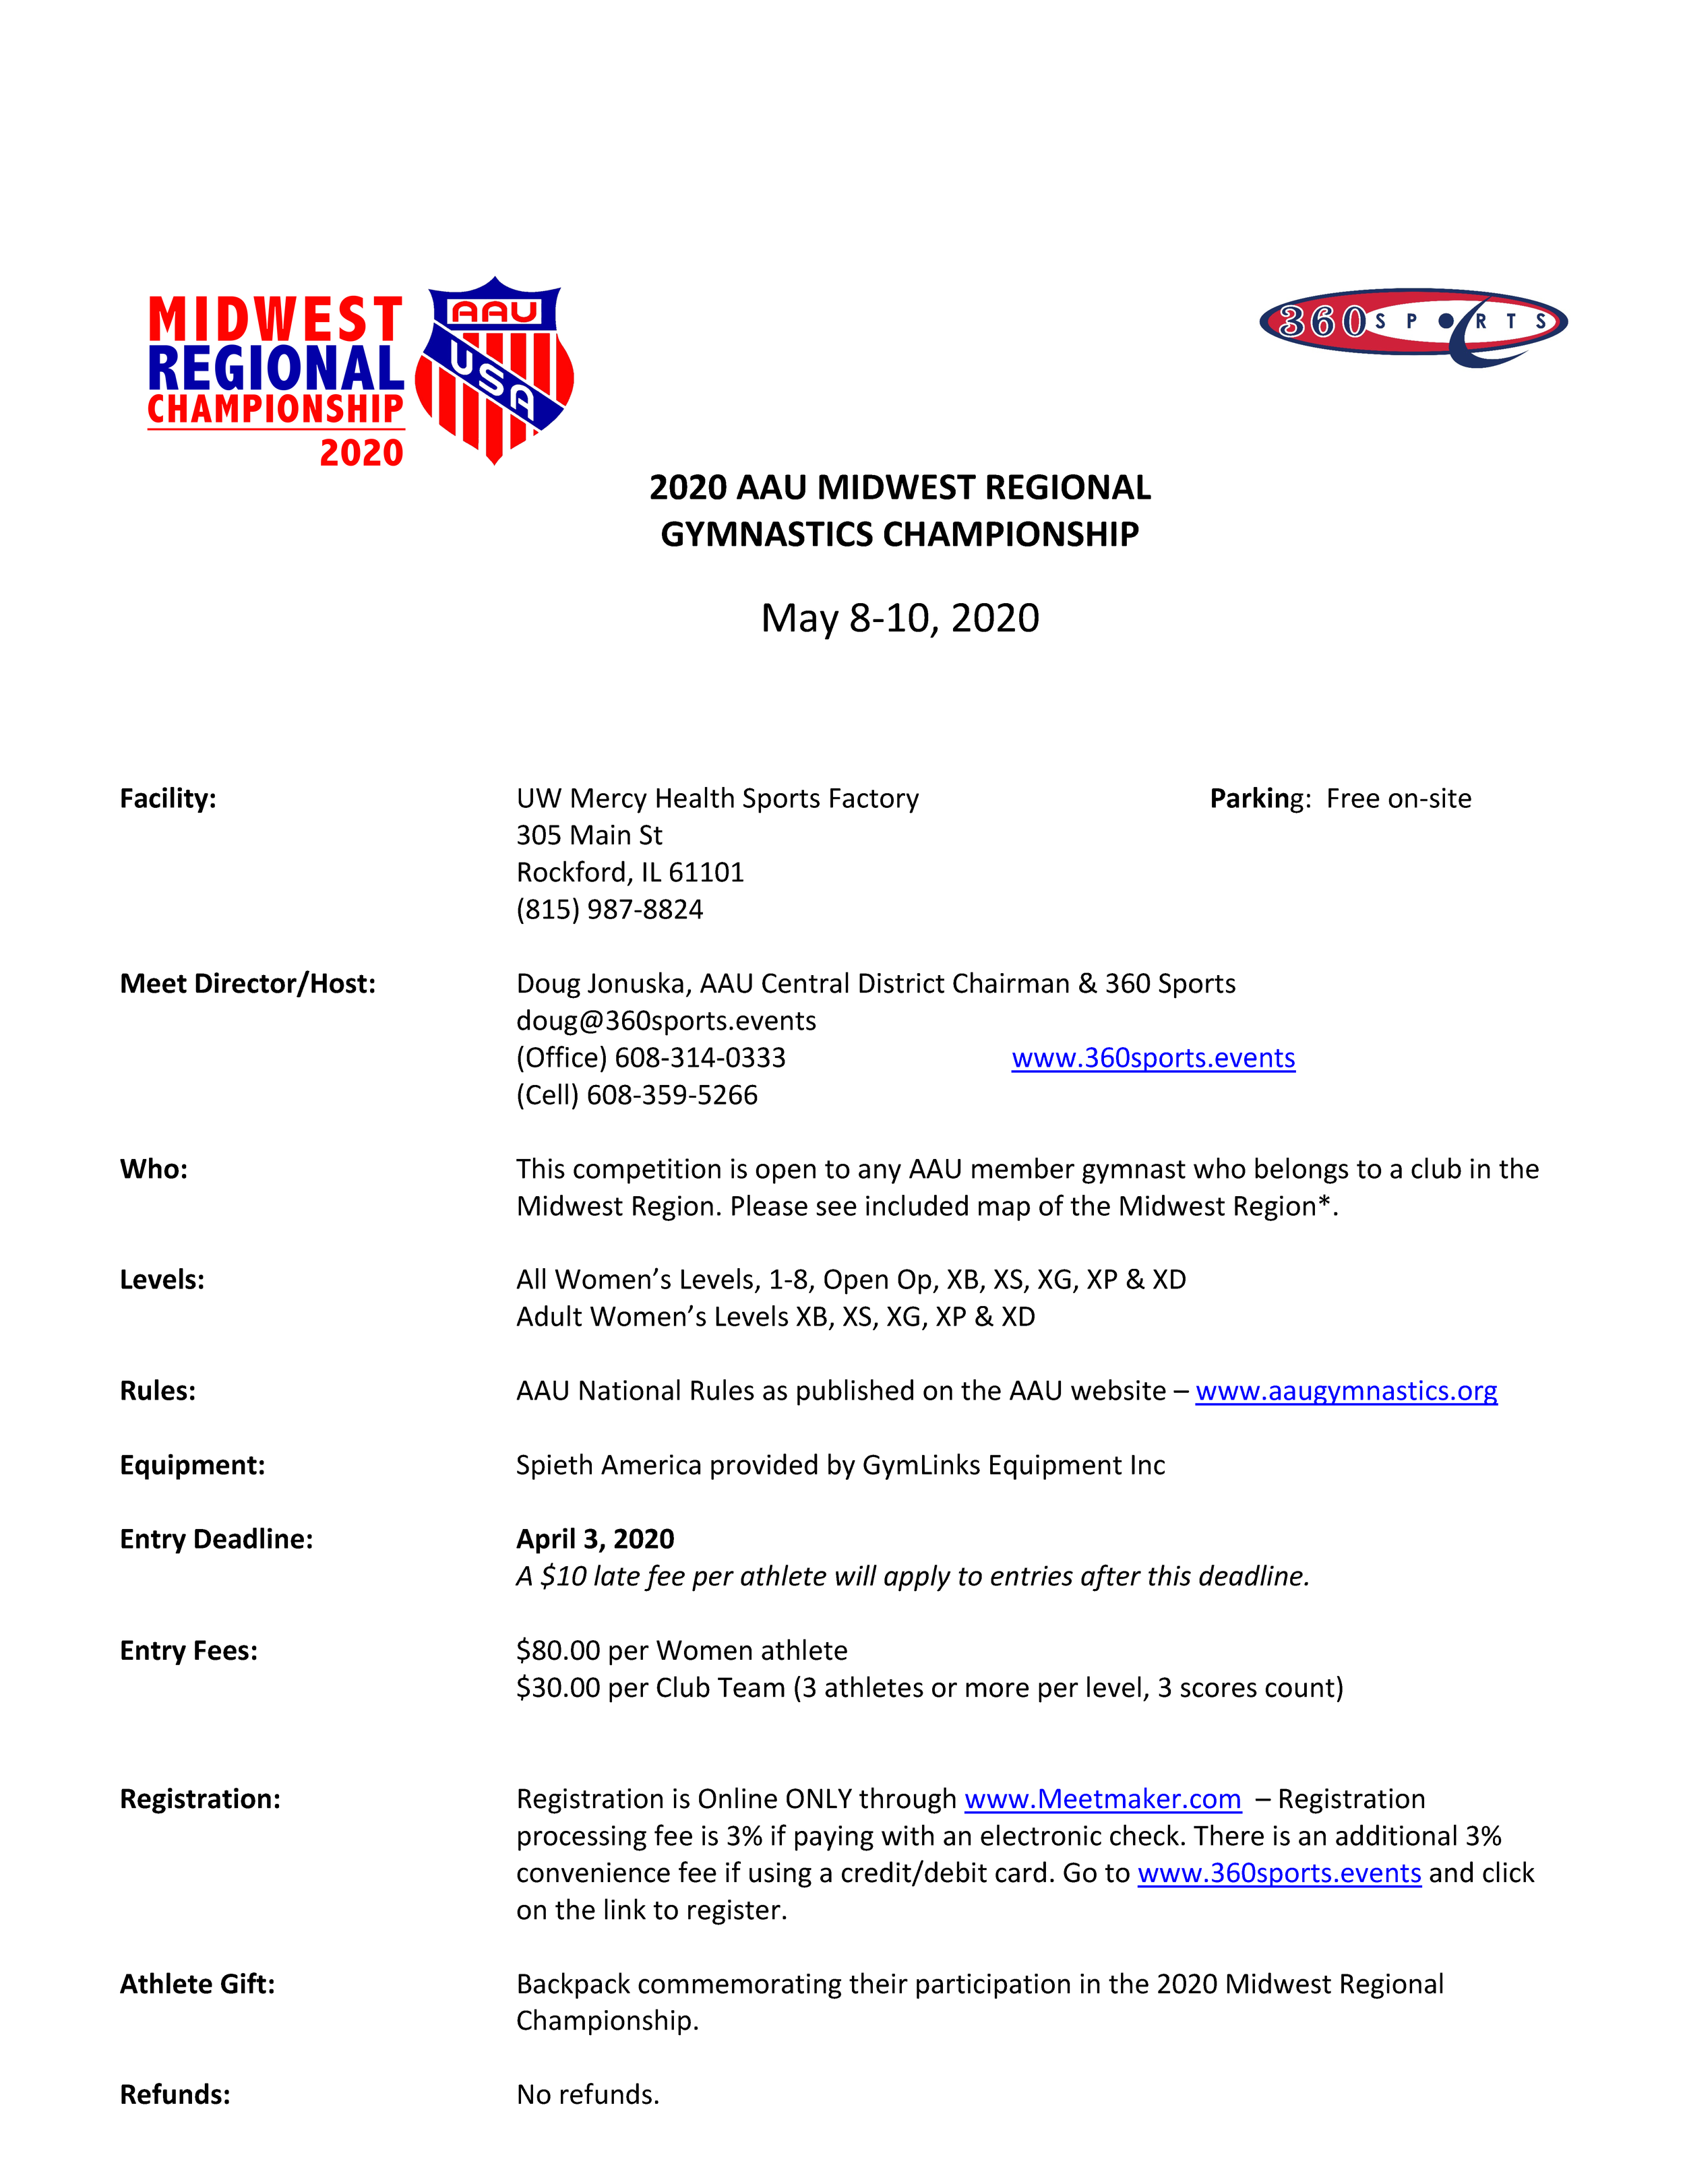 2020 AAU Midwest Regional Registration Packet -10.4.19-2_Page_2.png